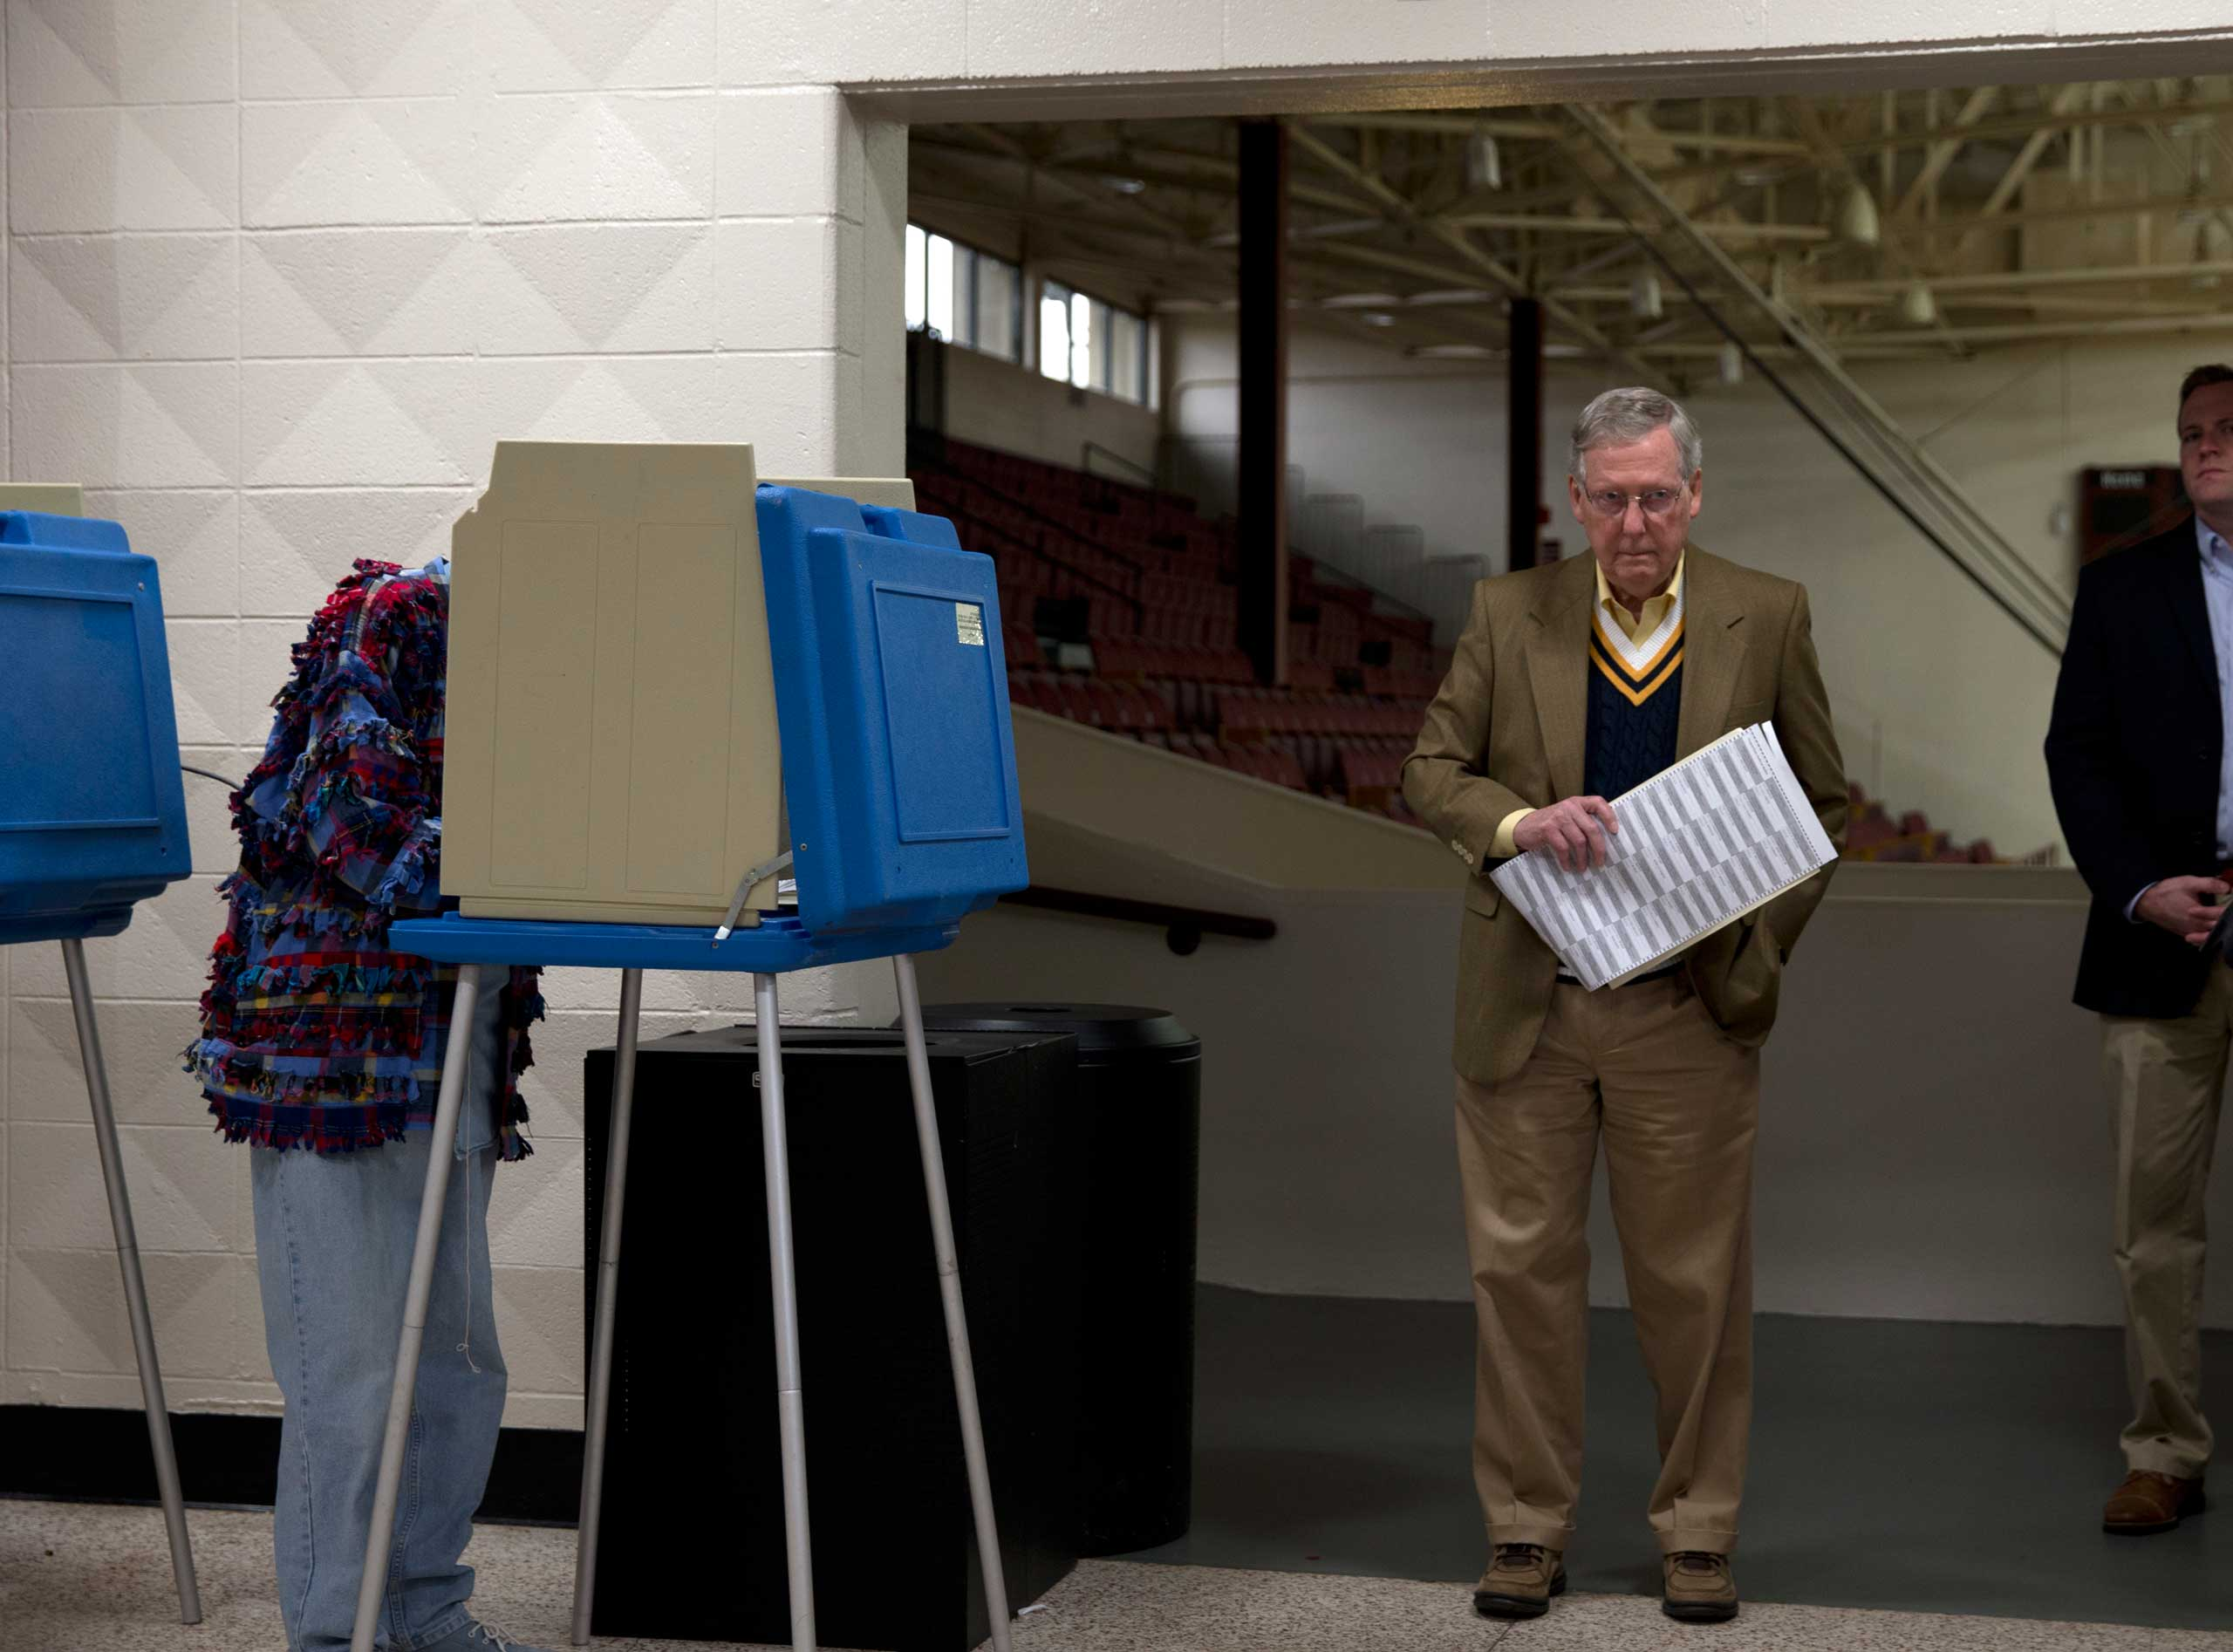 Mitch McConnell, the senior Senator from Kentucky, votes in the midterm election at Bellarmine University Knights Hall Hallway in Louisville, Ky. on Nov. 4, 2014.